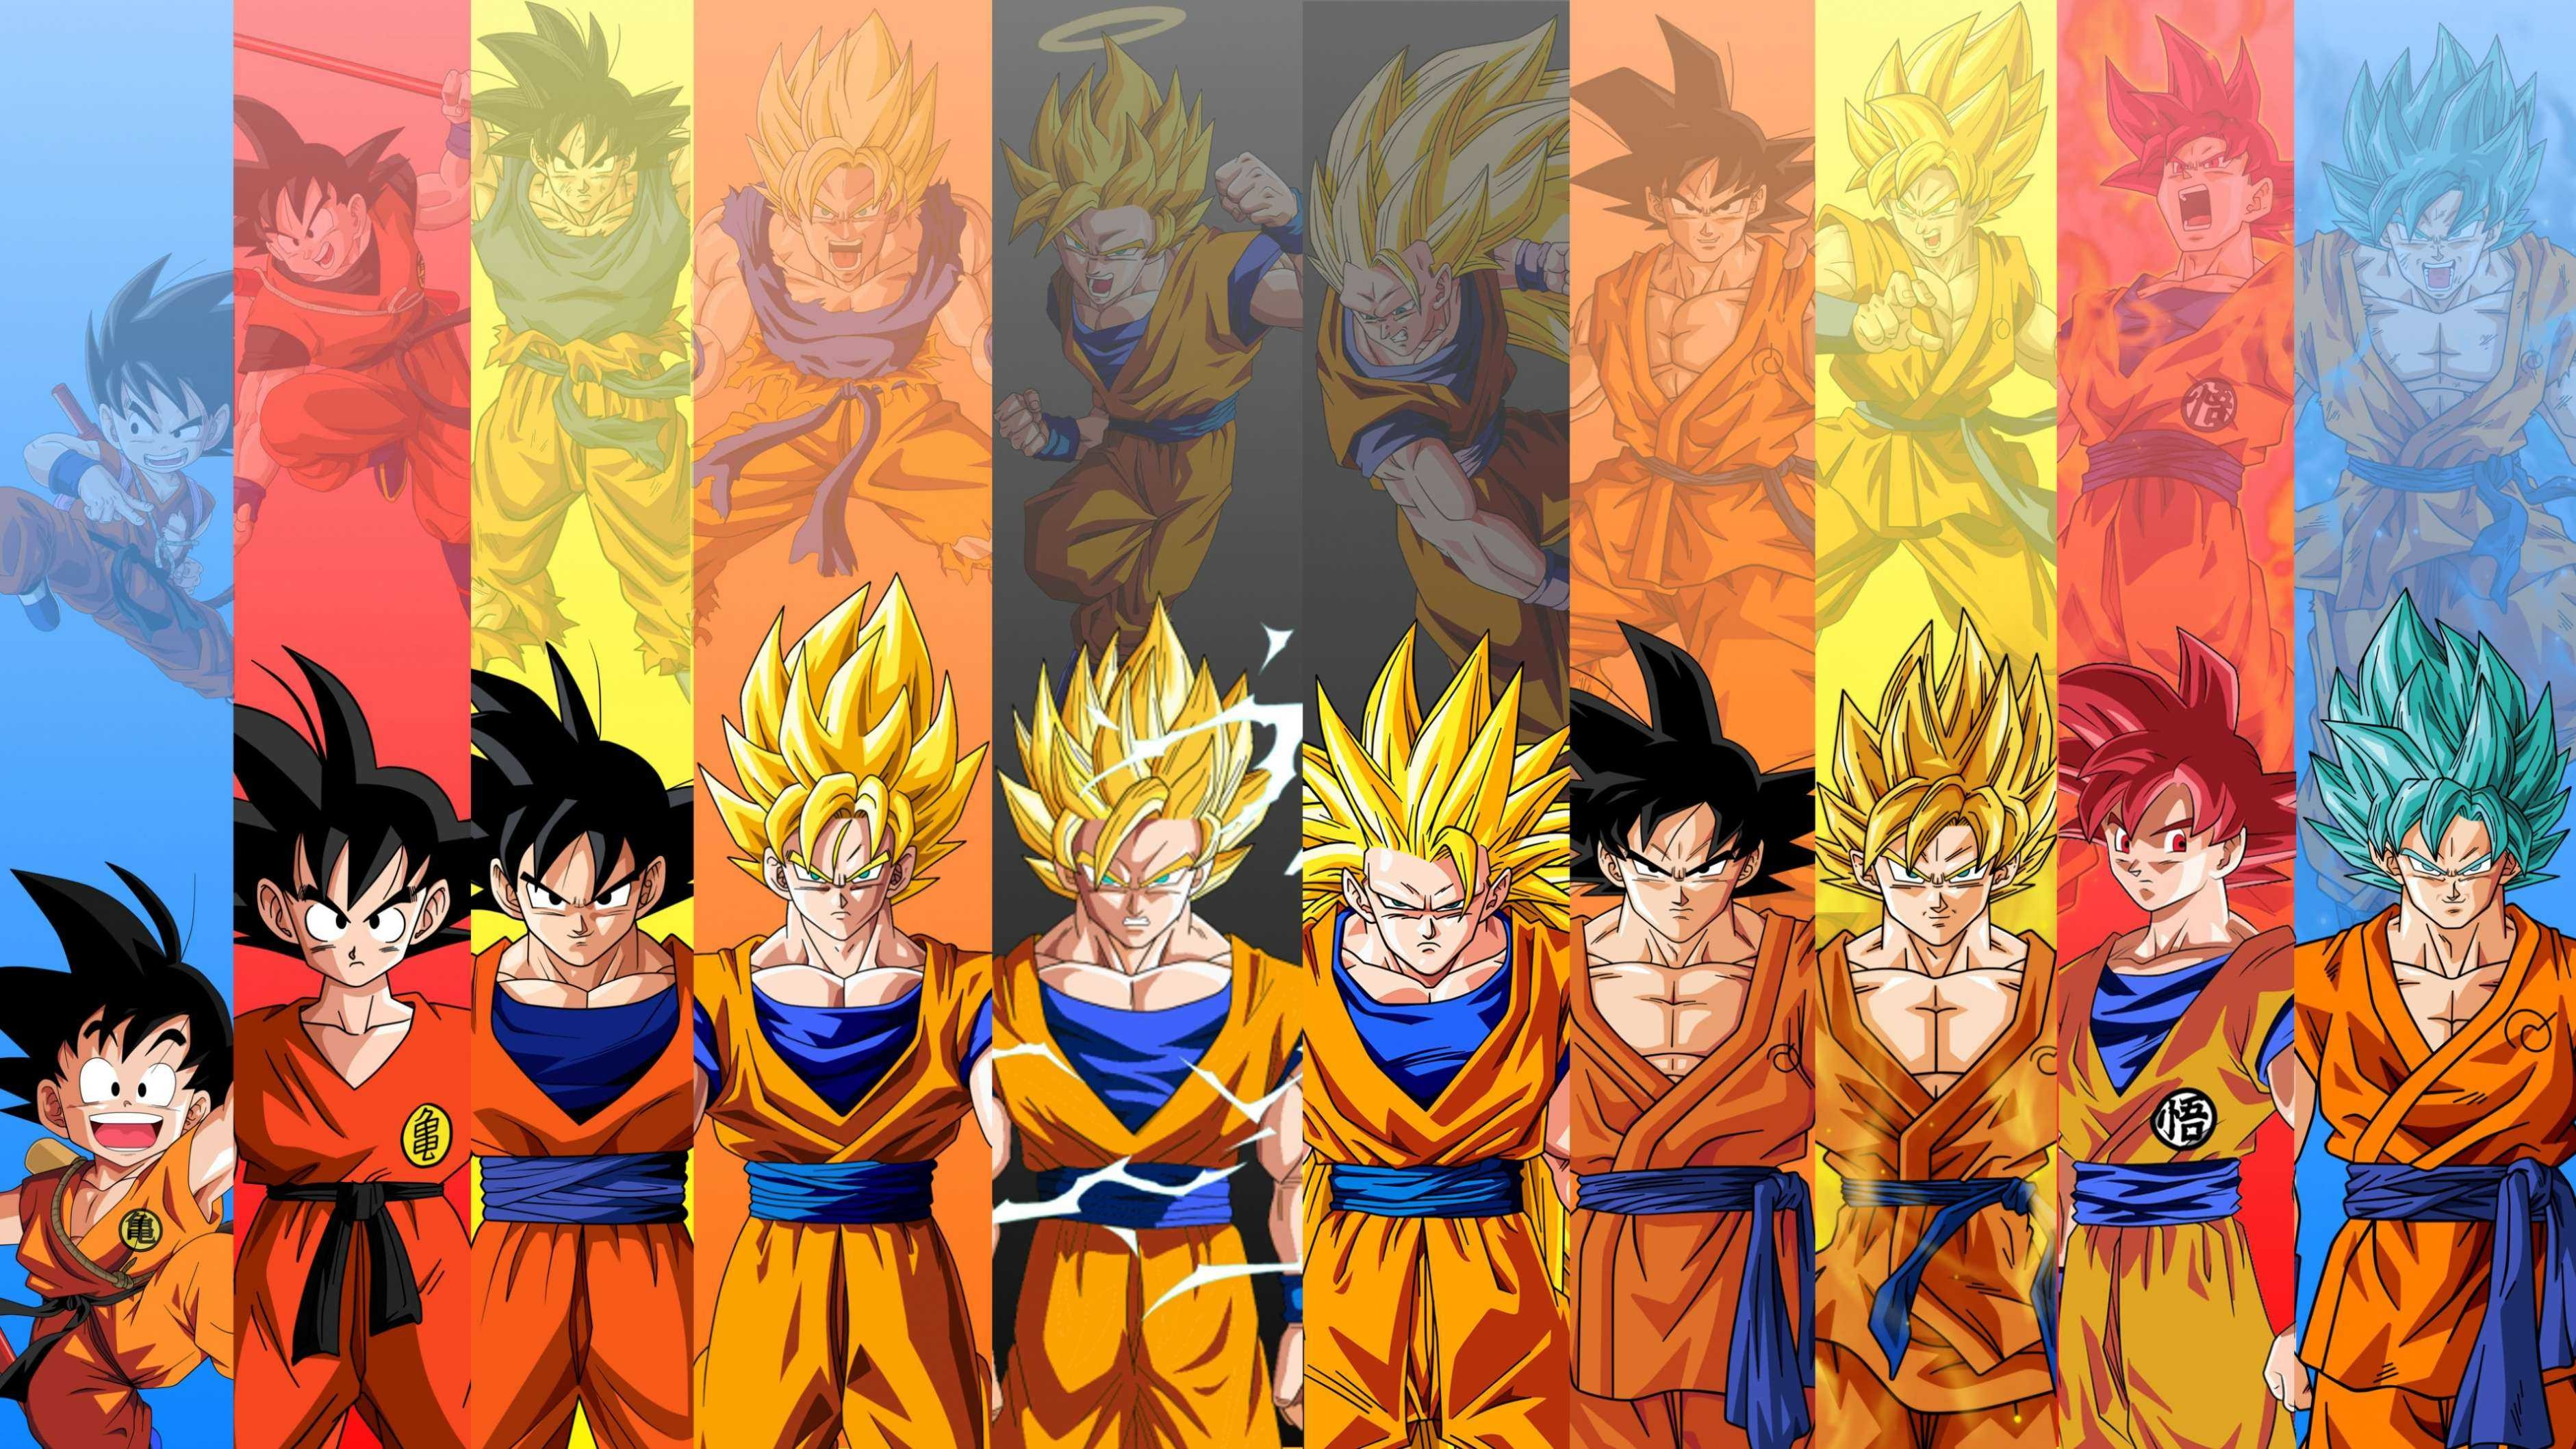 3763x2116 Dragon Ball Super Wallpaper HD 10 - 3763 X 2116